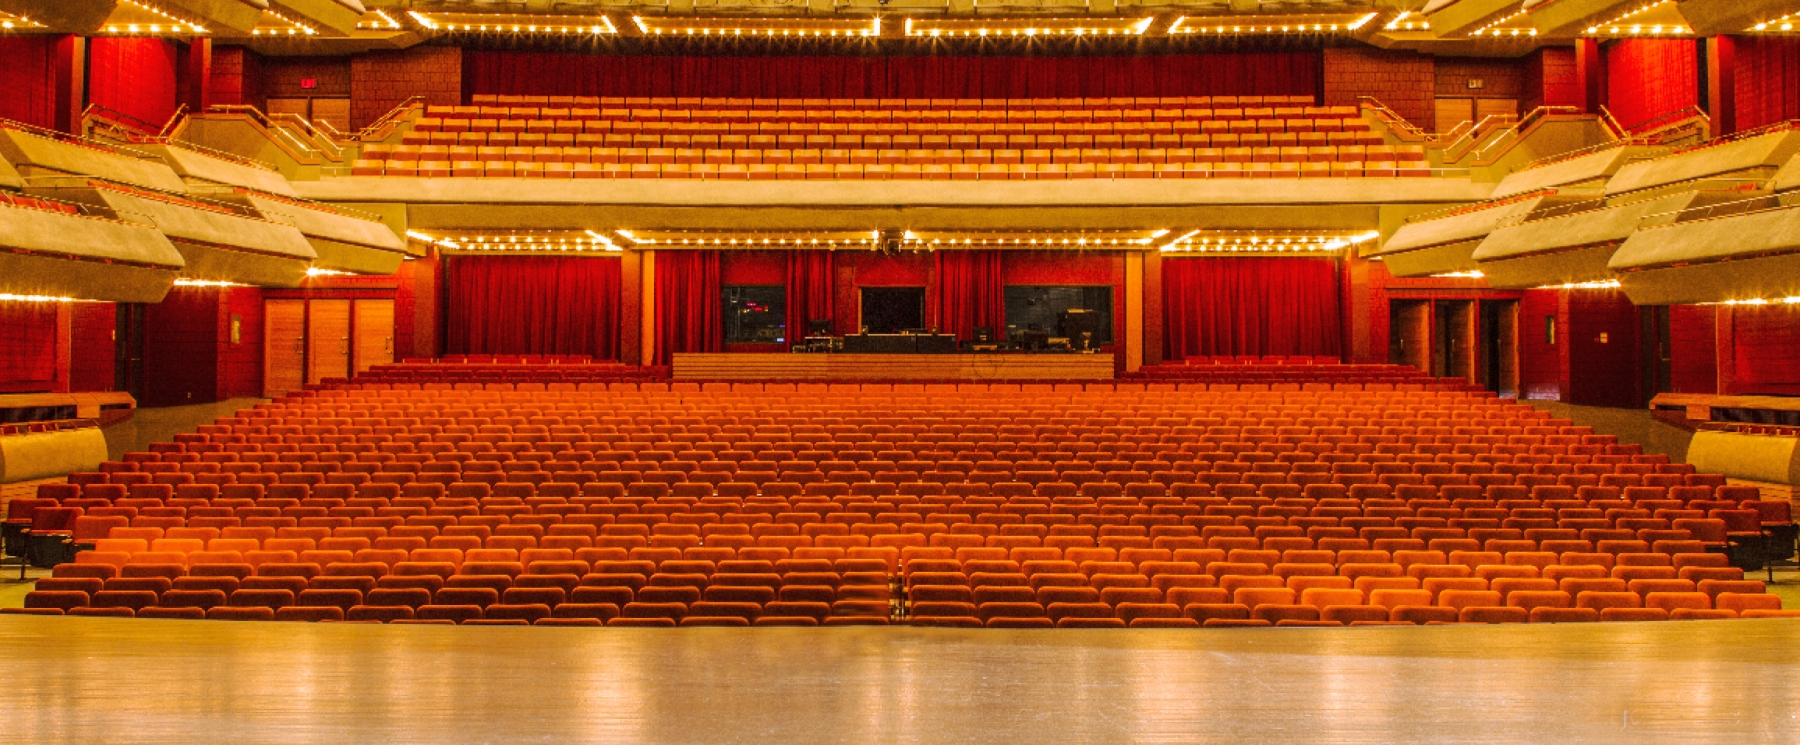 view of empty auditorium from stage